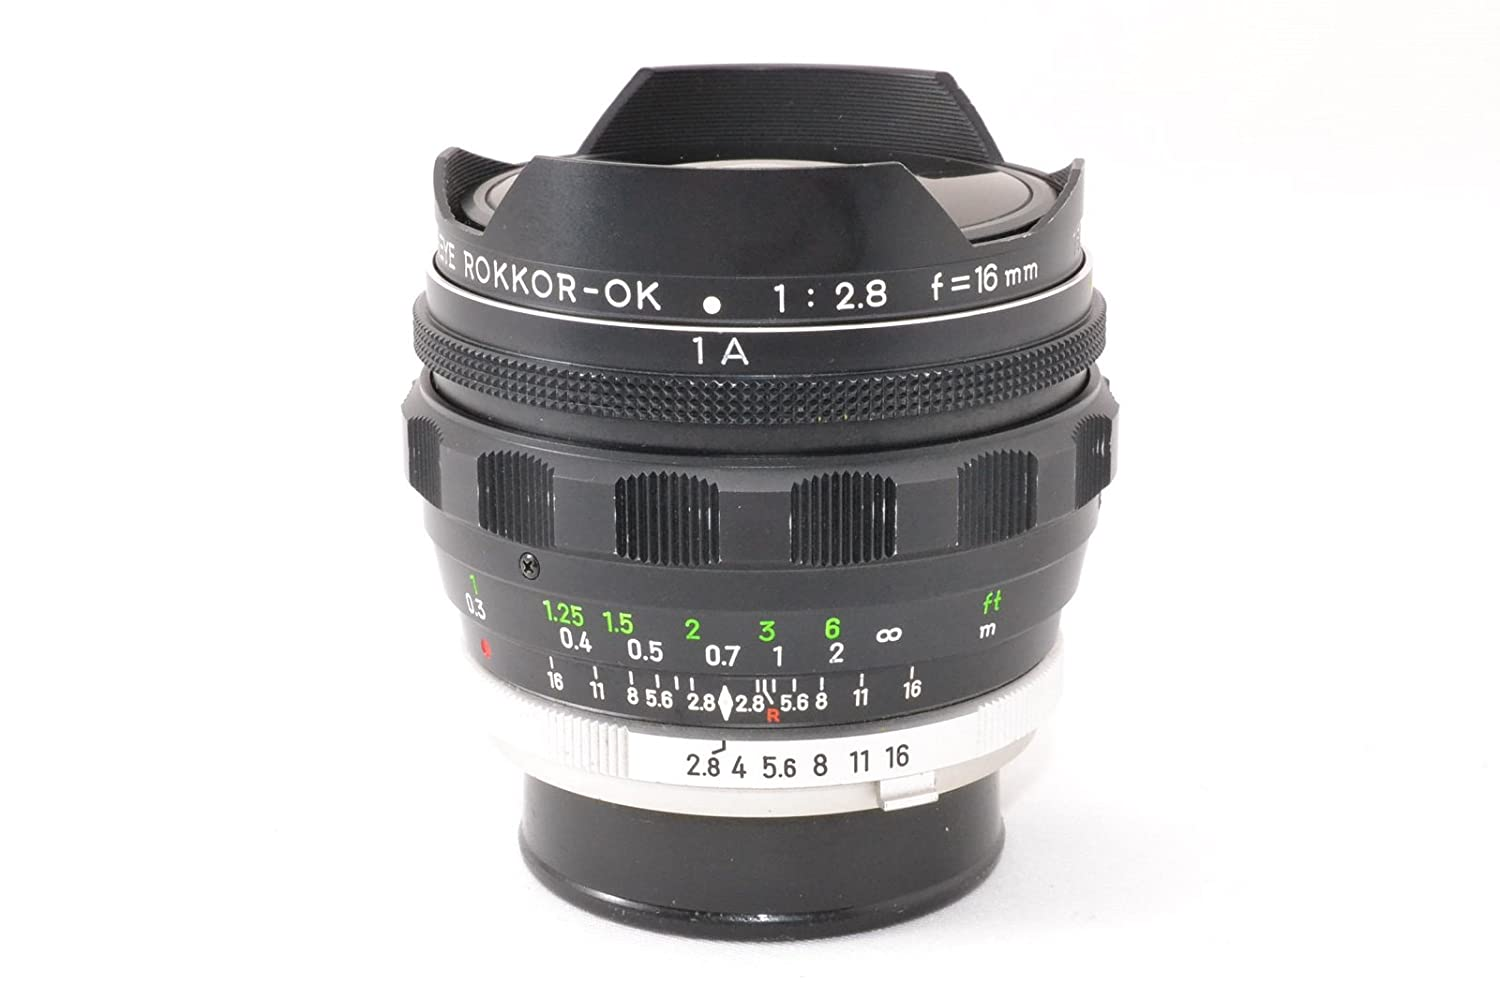 MINOLTA ミノルタ MC ROKKOR-OK 16mm F2.8 FISH-EYE   B072Q866Z2